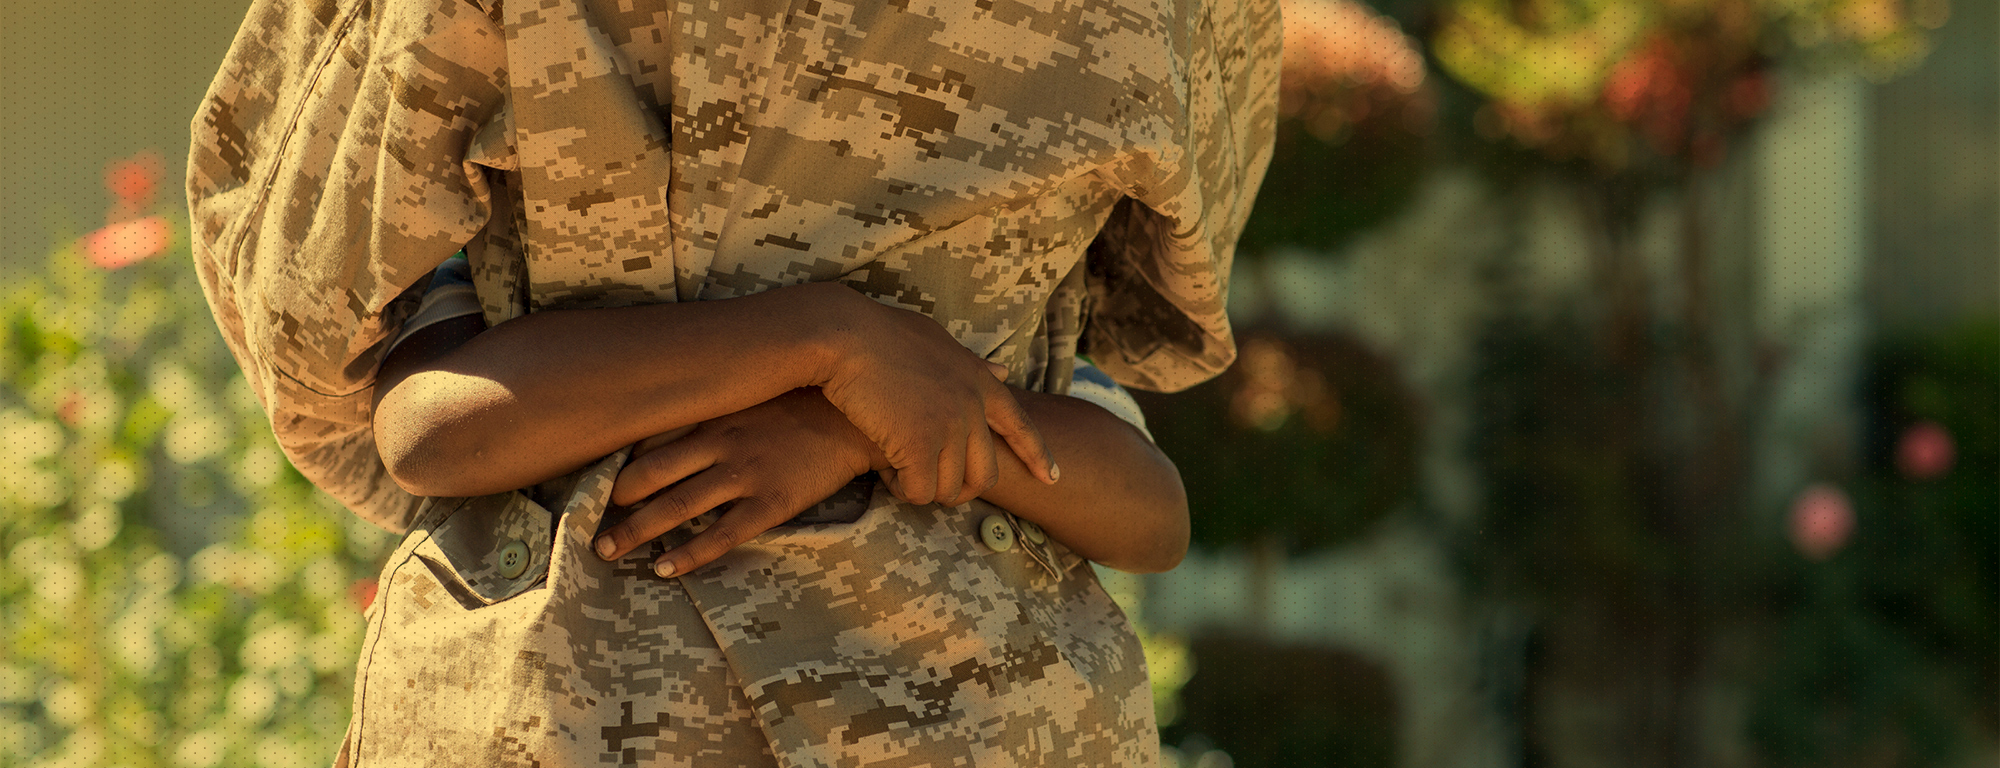 Adult in camouflage hugging child